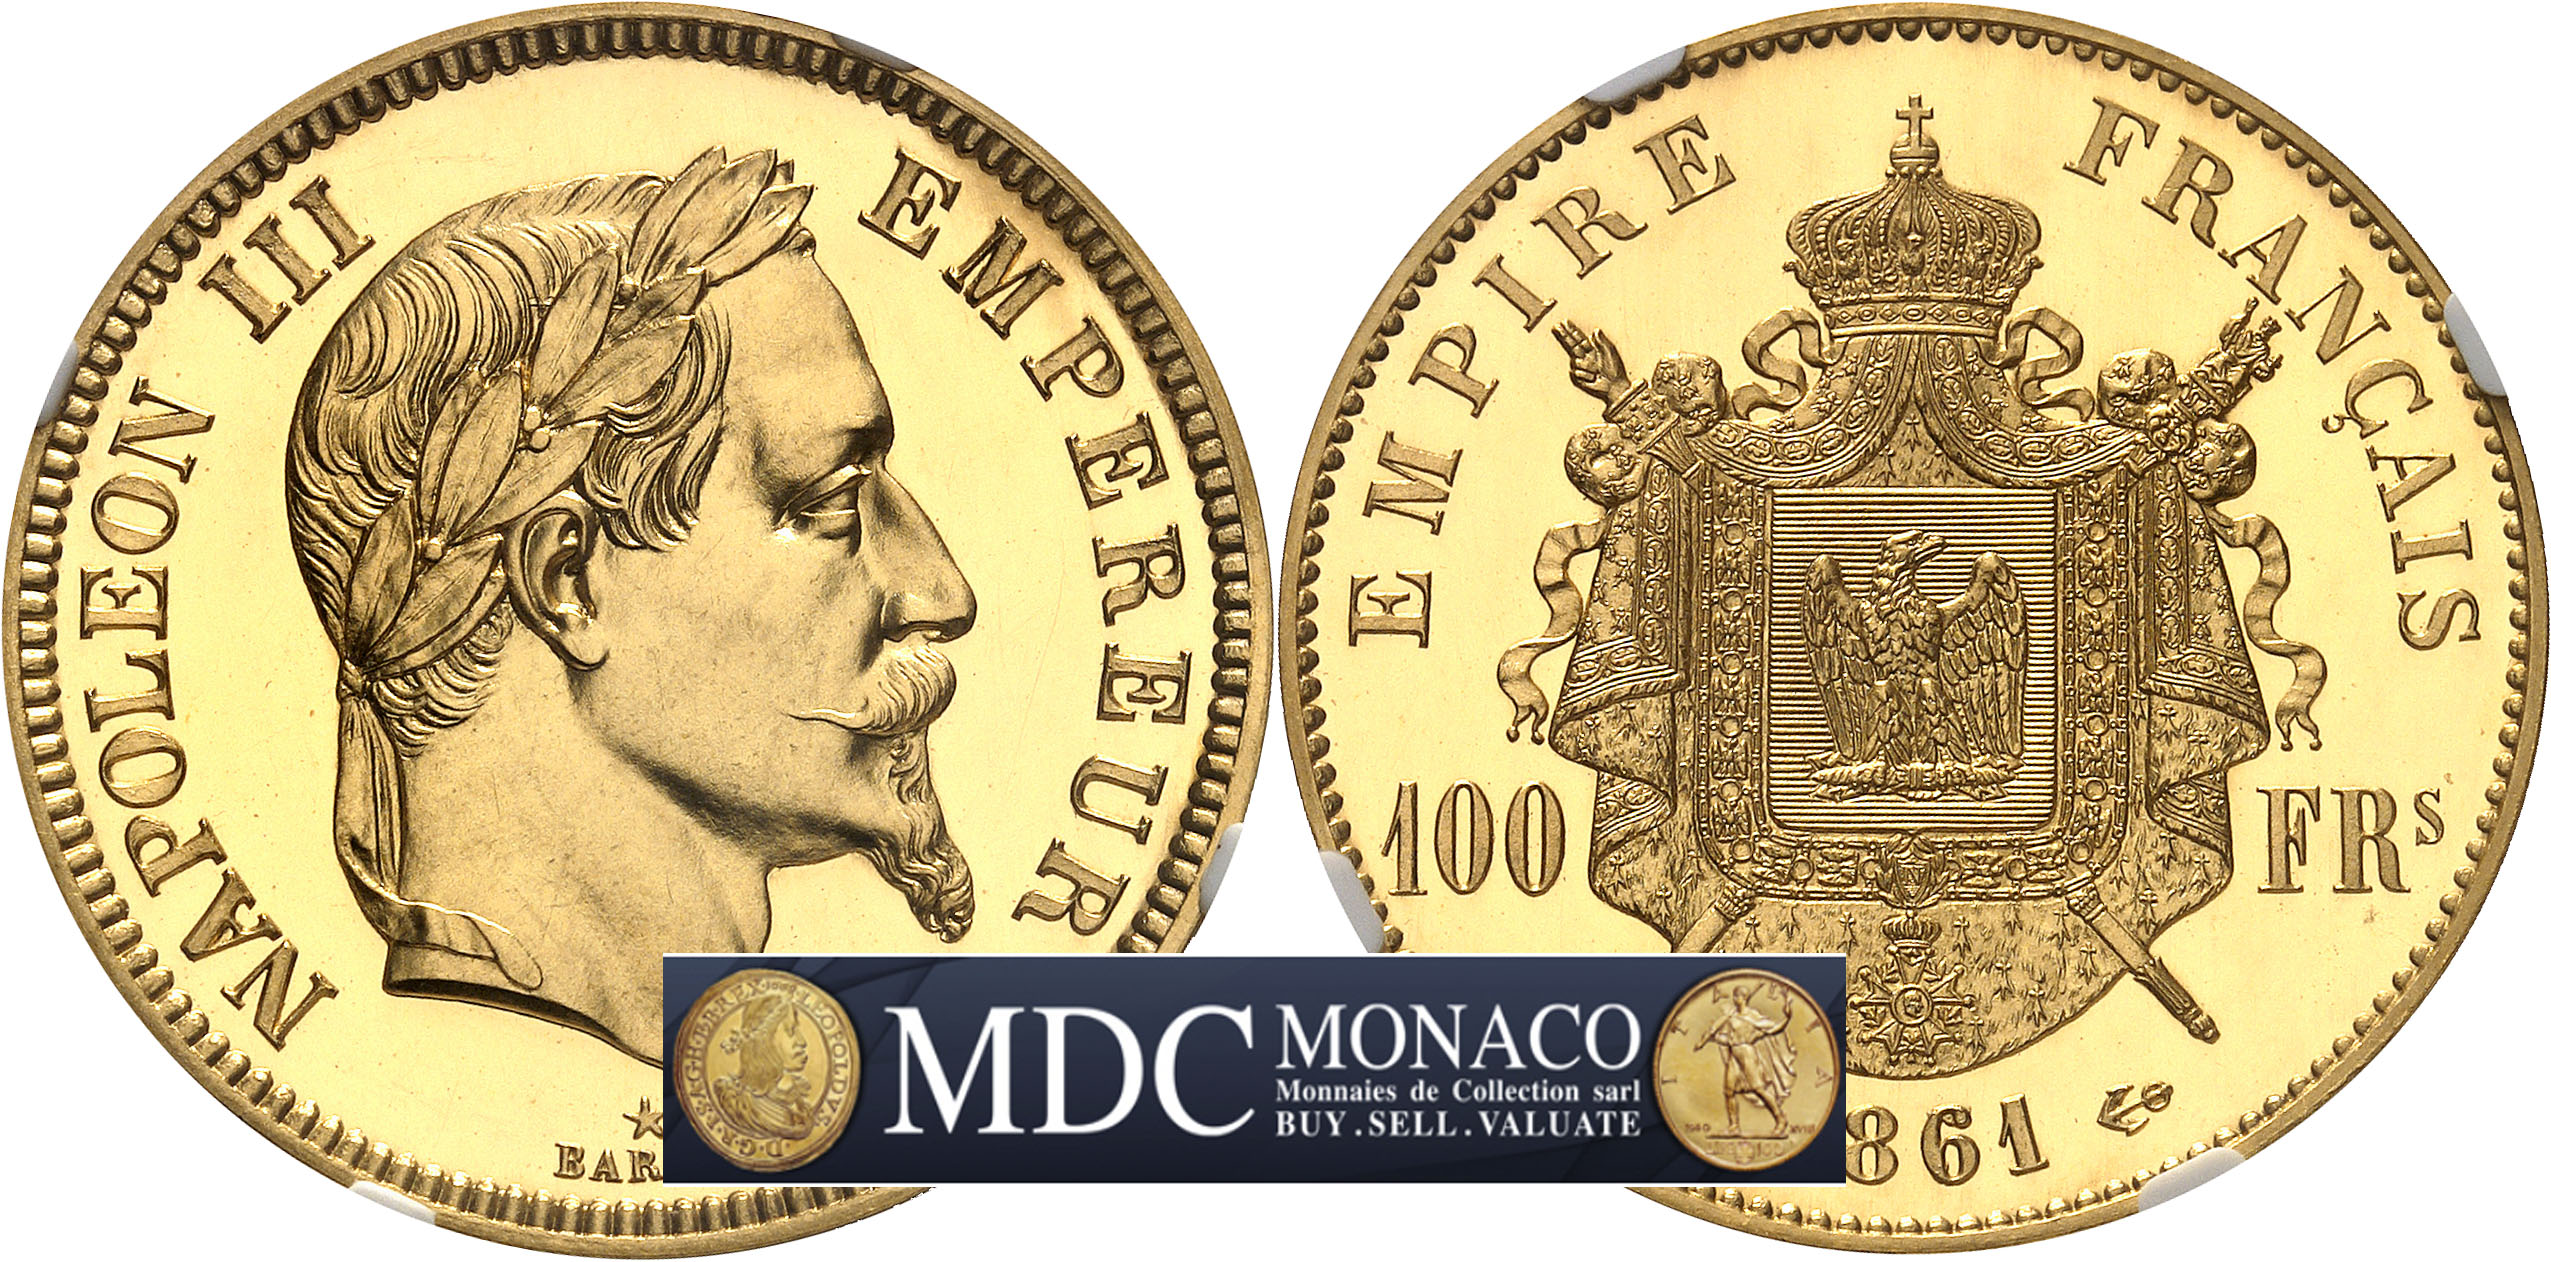 MDC Monaco June 12 Auction is Open for Bidding - Over 800 Hand-Selected Rarities Are On Offer